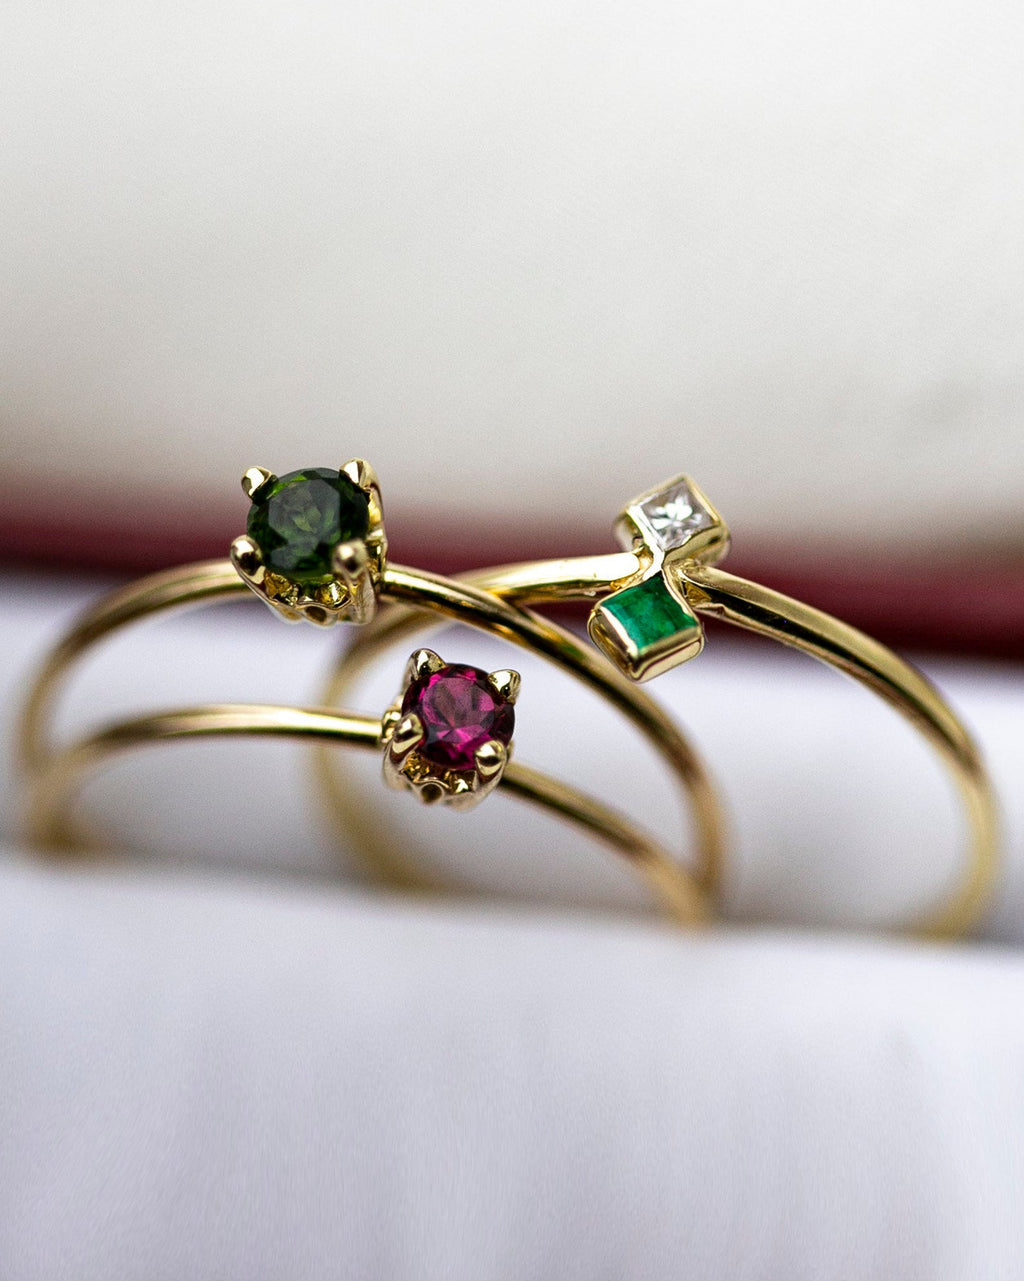 14k Gold Solitaire Birthstone Ring